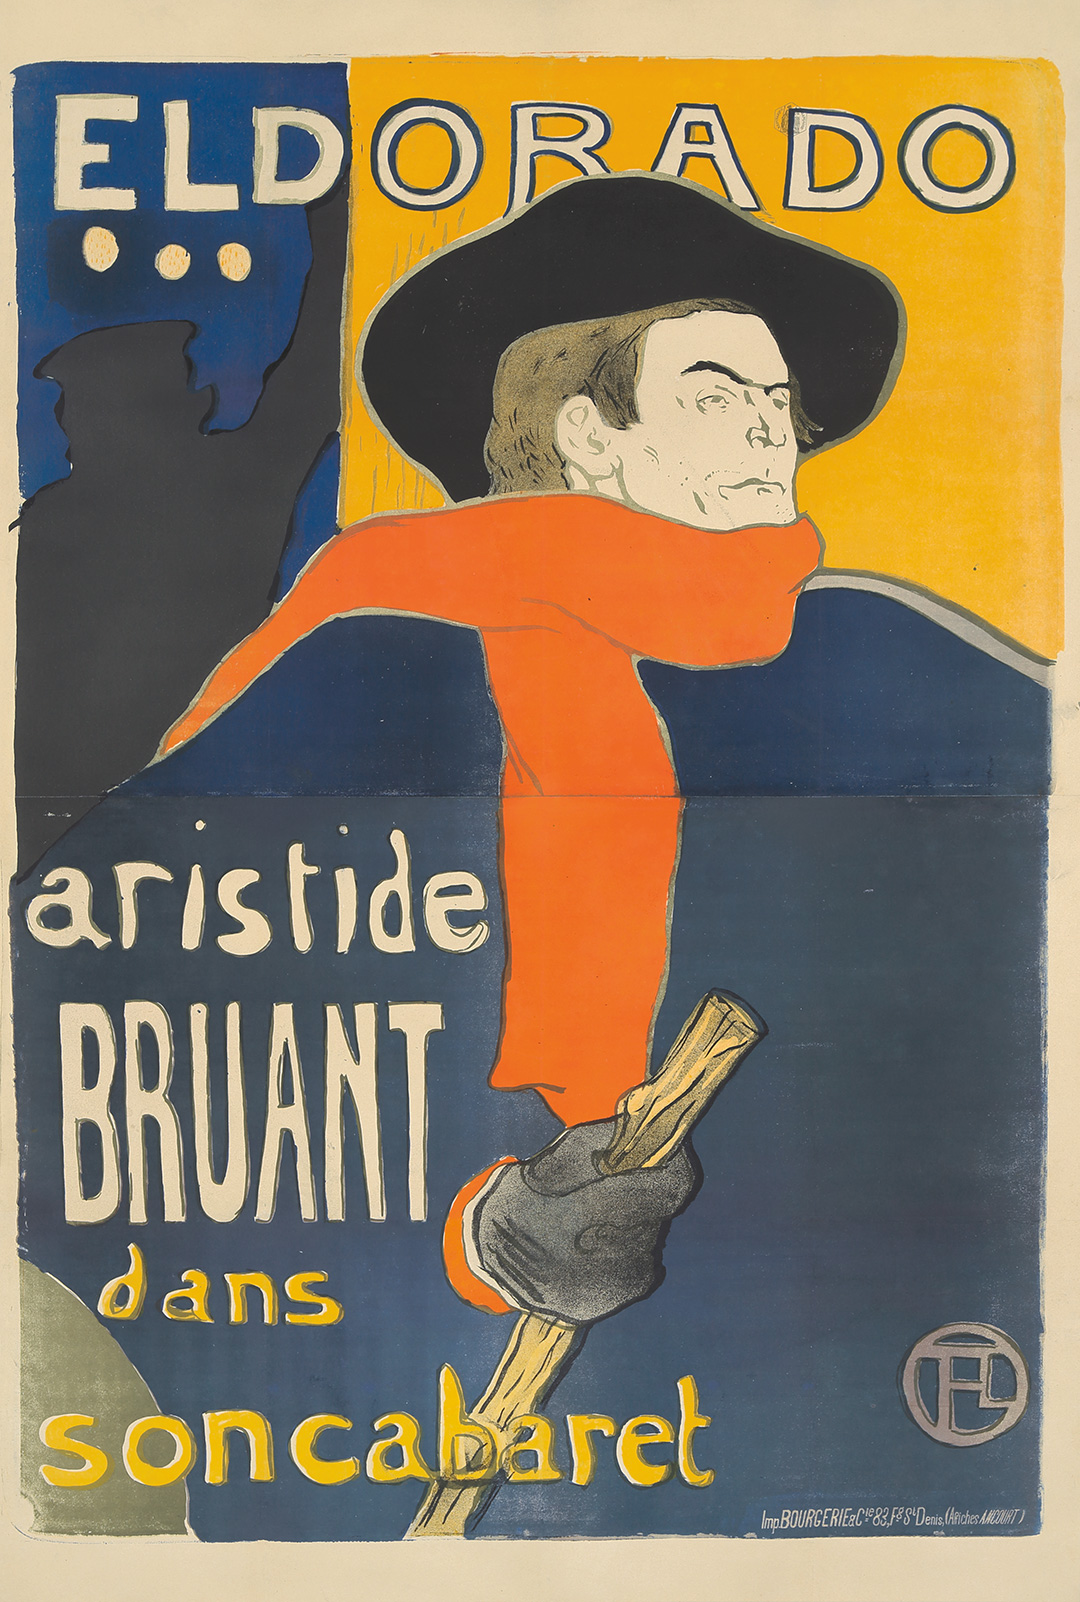 Belle Epoque Icons Mucha and Toulouse-Lautrec Prevail in Poster Auctions International's Rare Posters Auction, July 21st